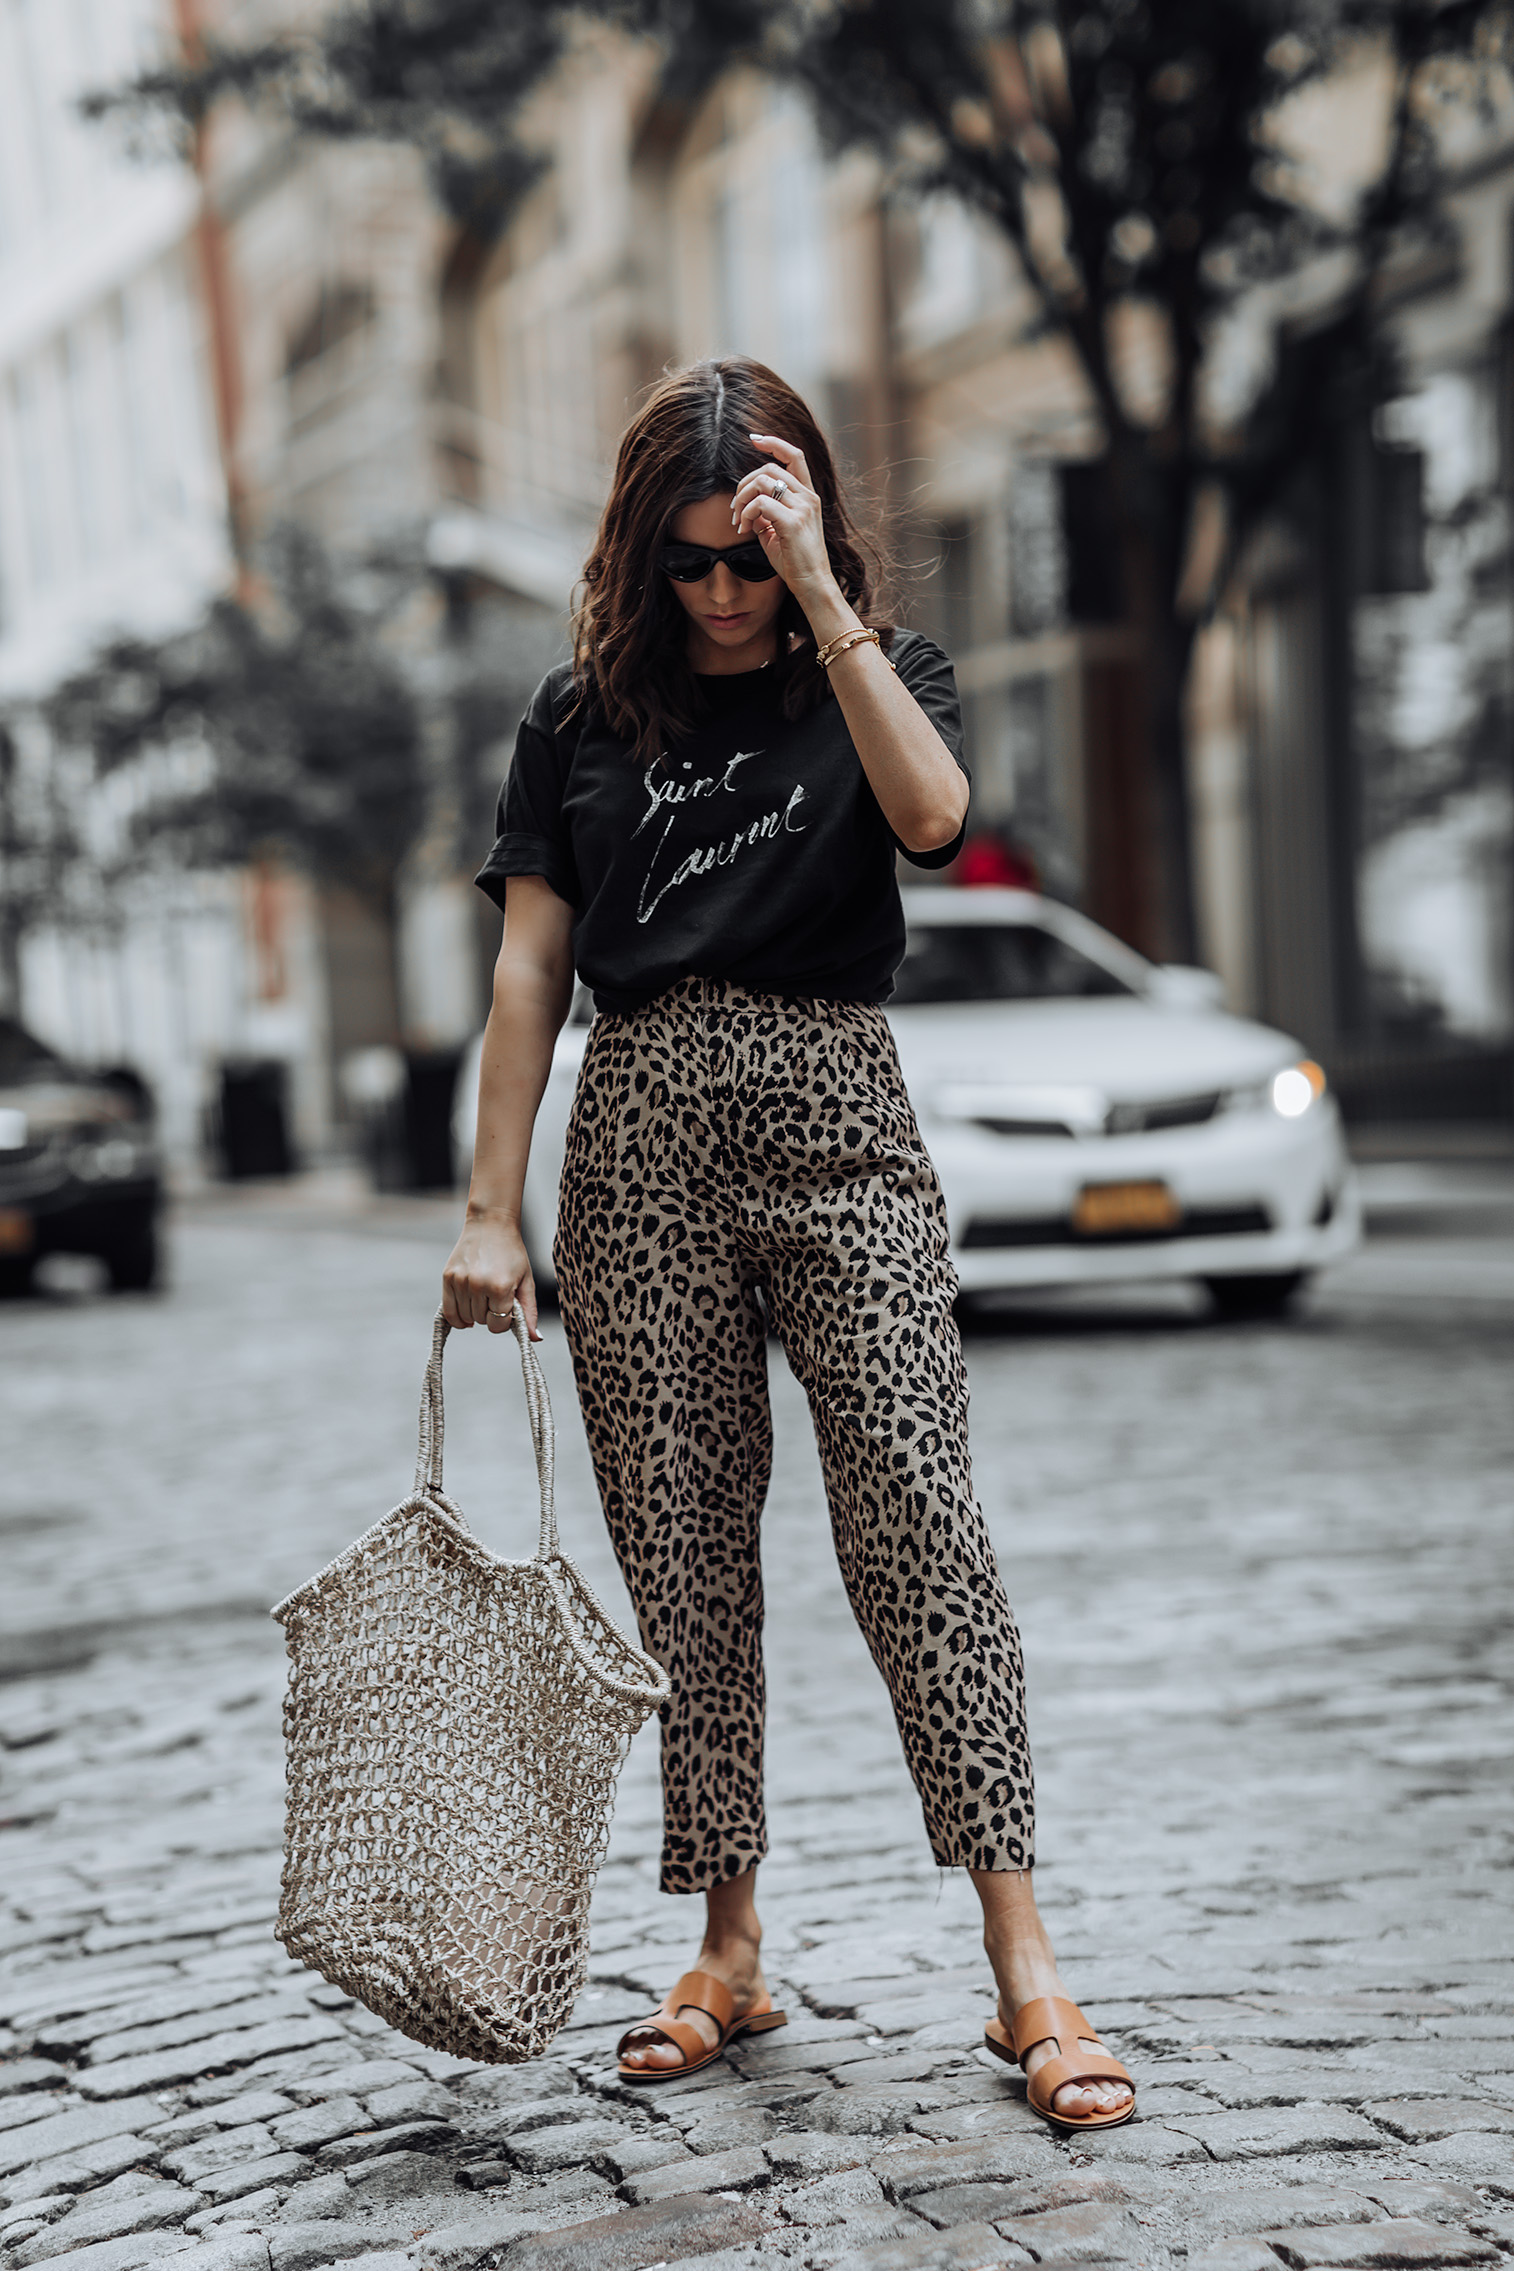 Leopard obsessed | Saint Laurent Tee | Leopard pants | Everlane Brown Slides (similar) | Basket Tote |